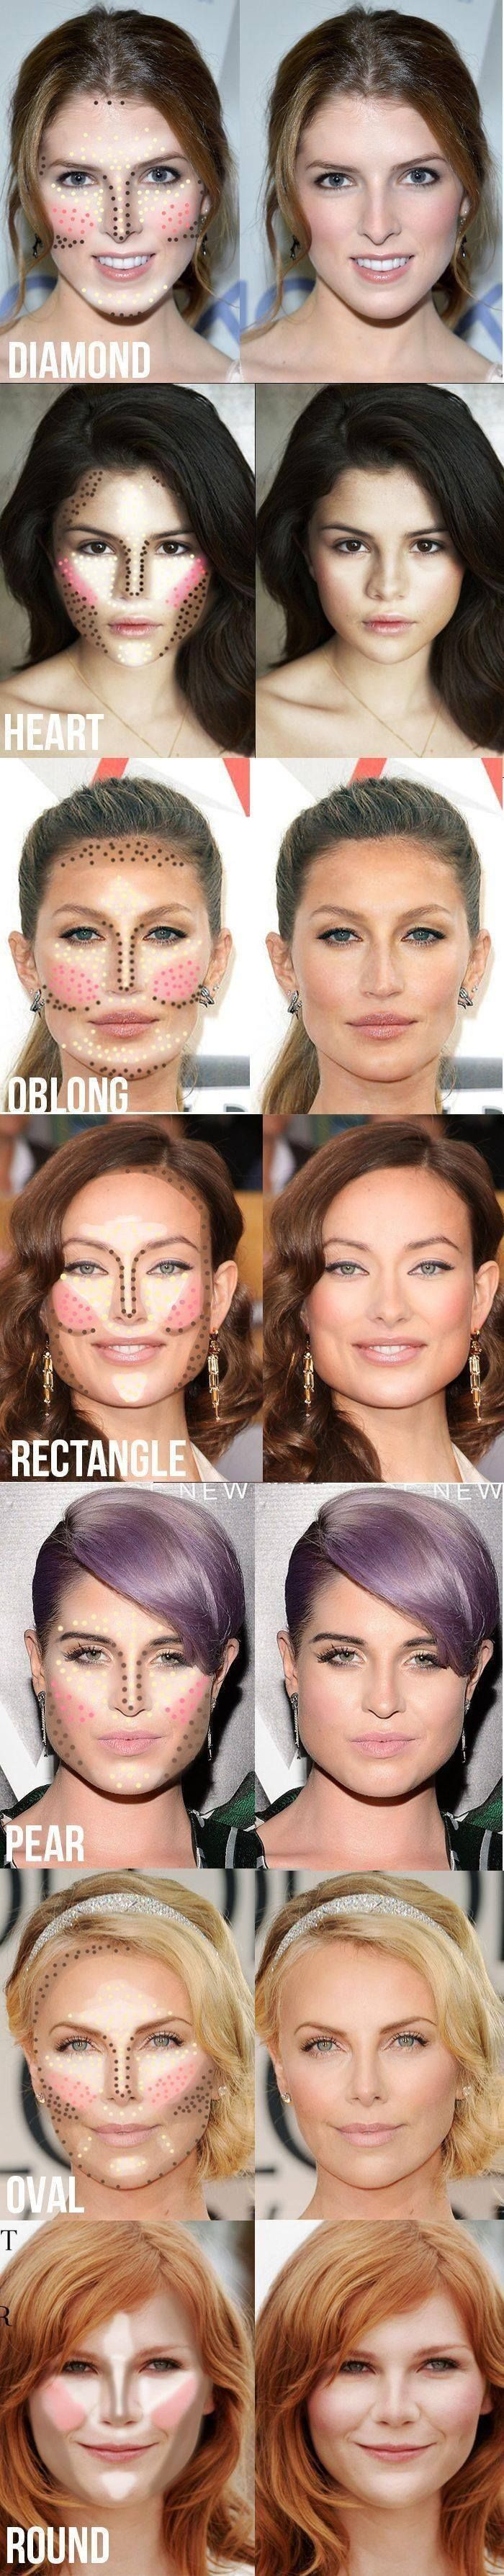 HOW TO CONTOUR AND HIGHLIGHT IN BEAUTIFUL EASY WAY http://sulia.com/my_thoughts/7e142f79-73e2-4d9f-af5b-3b5ccc4b0bfd/: